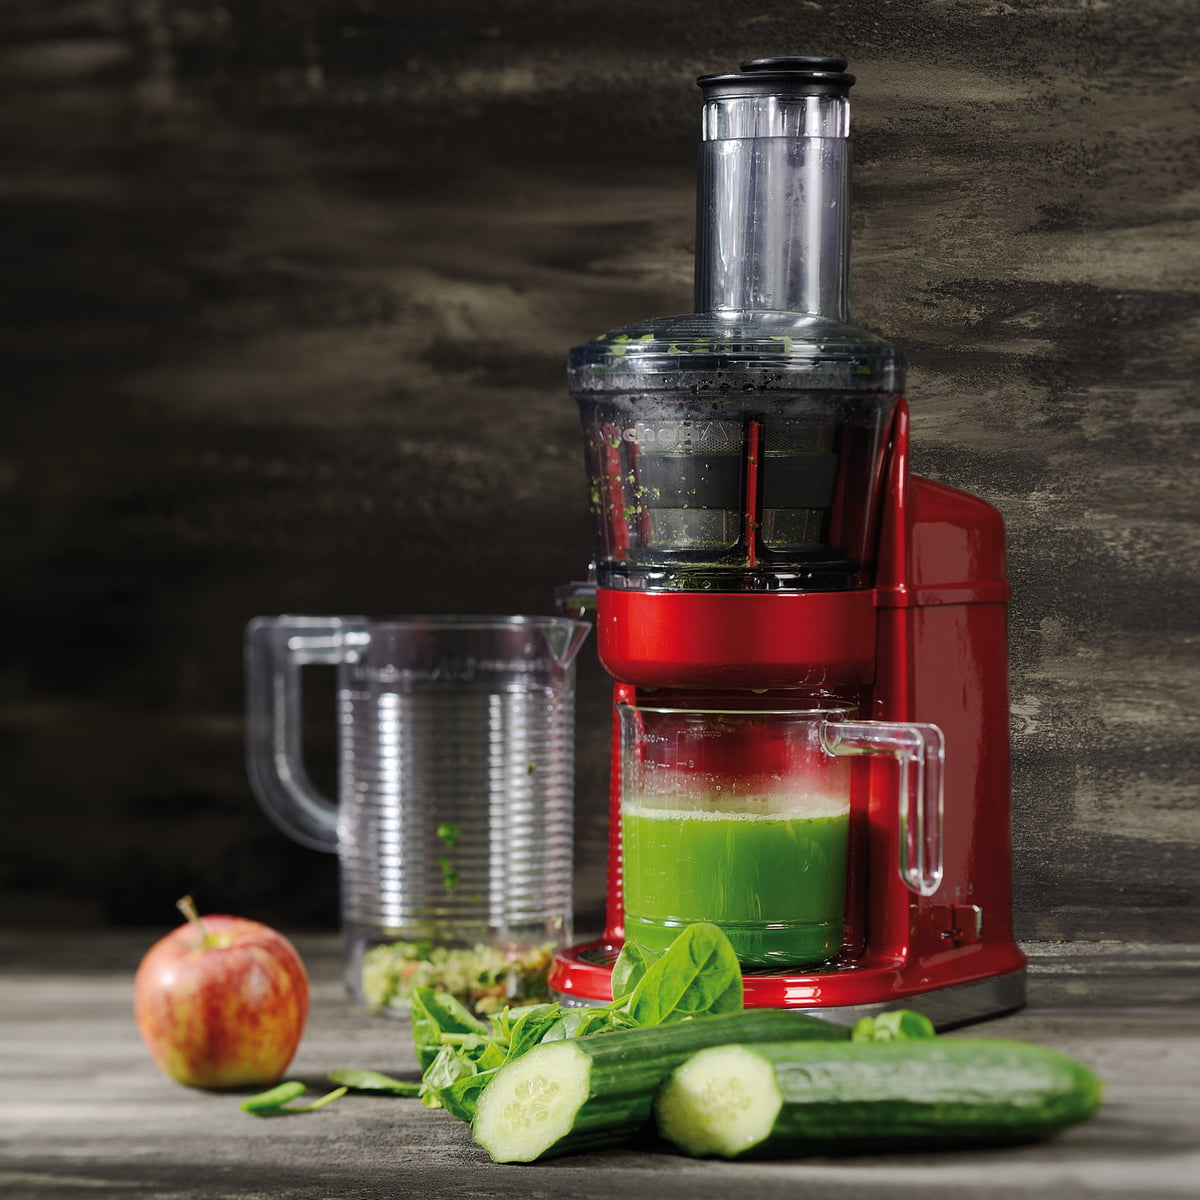 Slow Juicer Kitchenaid Artisan : Maximum Juicer by KitchenAid in the shop